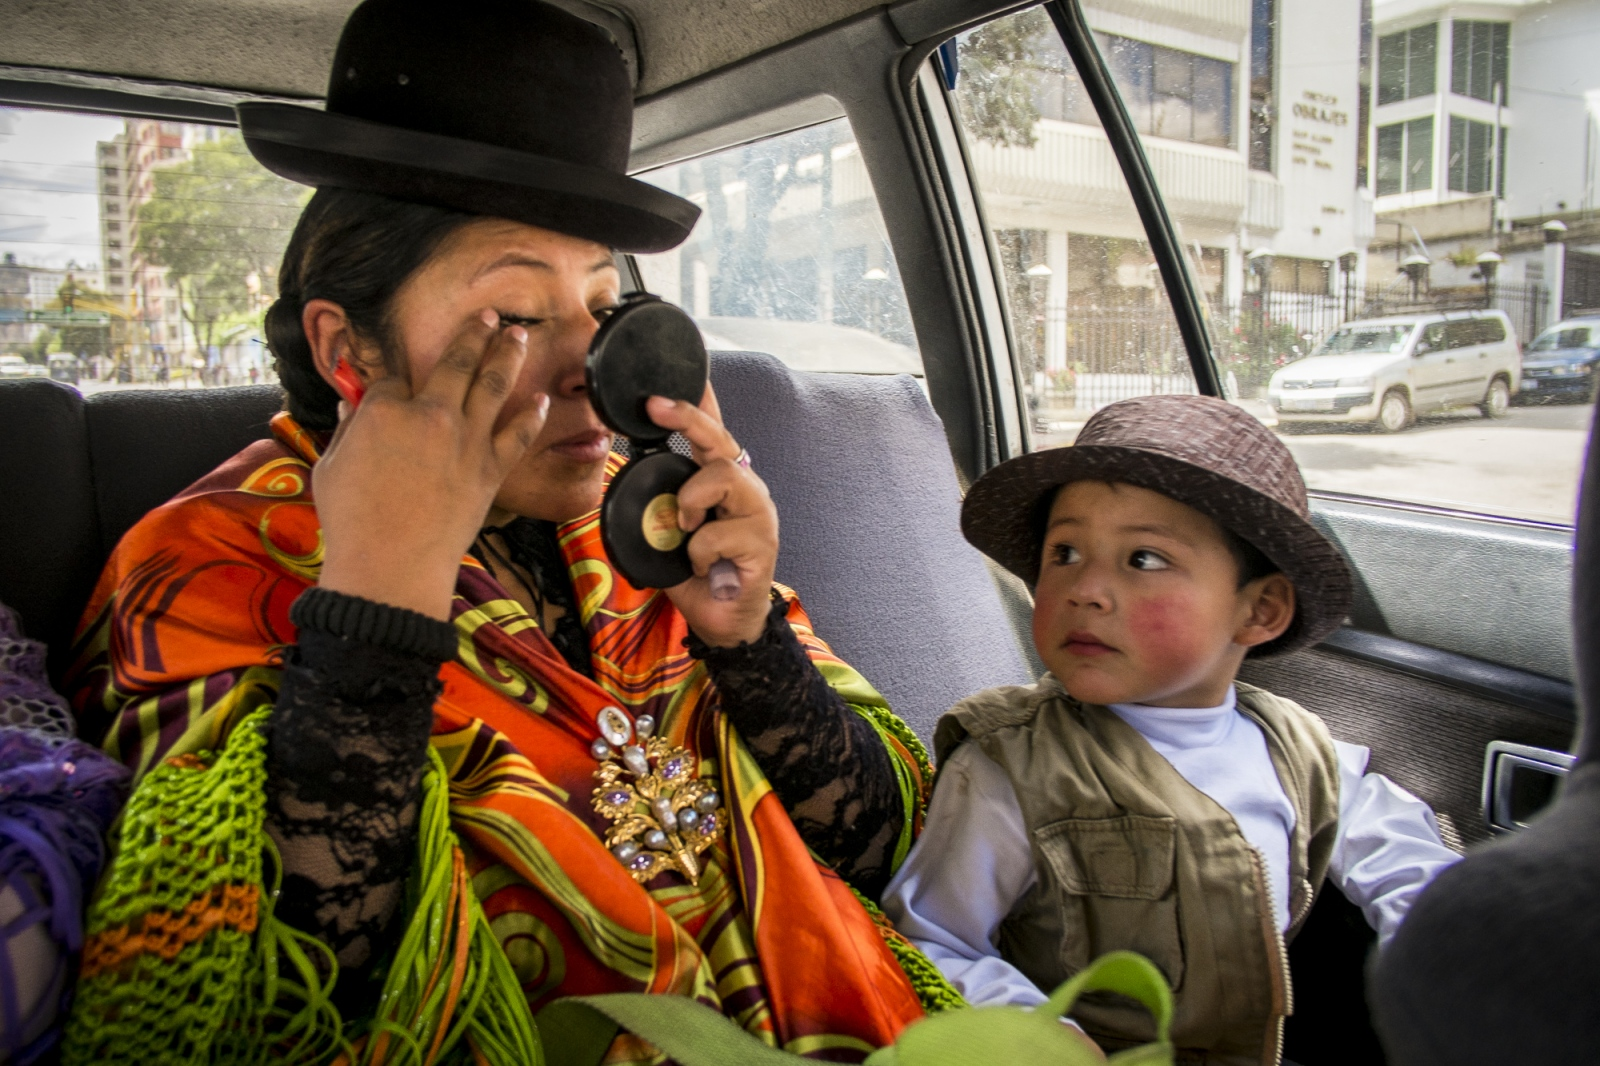 Mary Llanos Sanz, 31, best know as Juanita La Cariñosa (The Sweet One) the leader of the Wrestling Cholitas, puts make up on a taxi ride on the way to a fight while her little son looks at her.